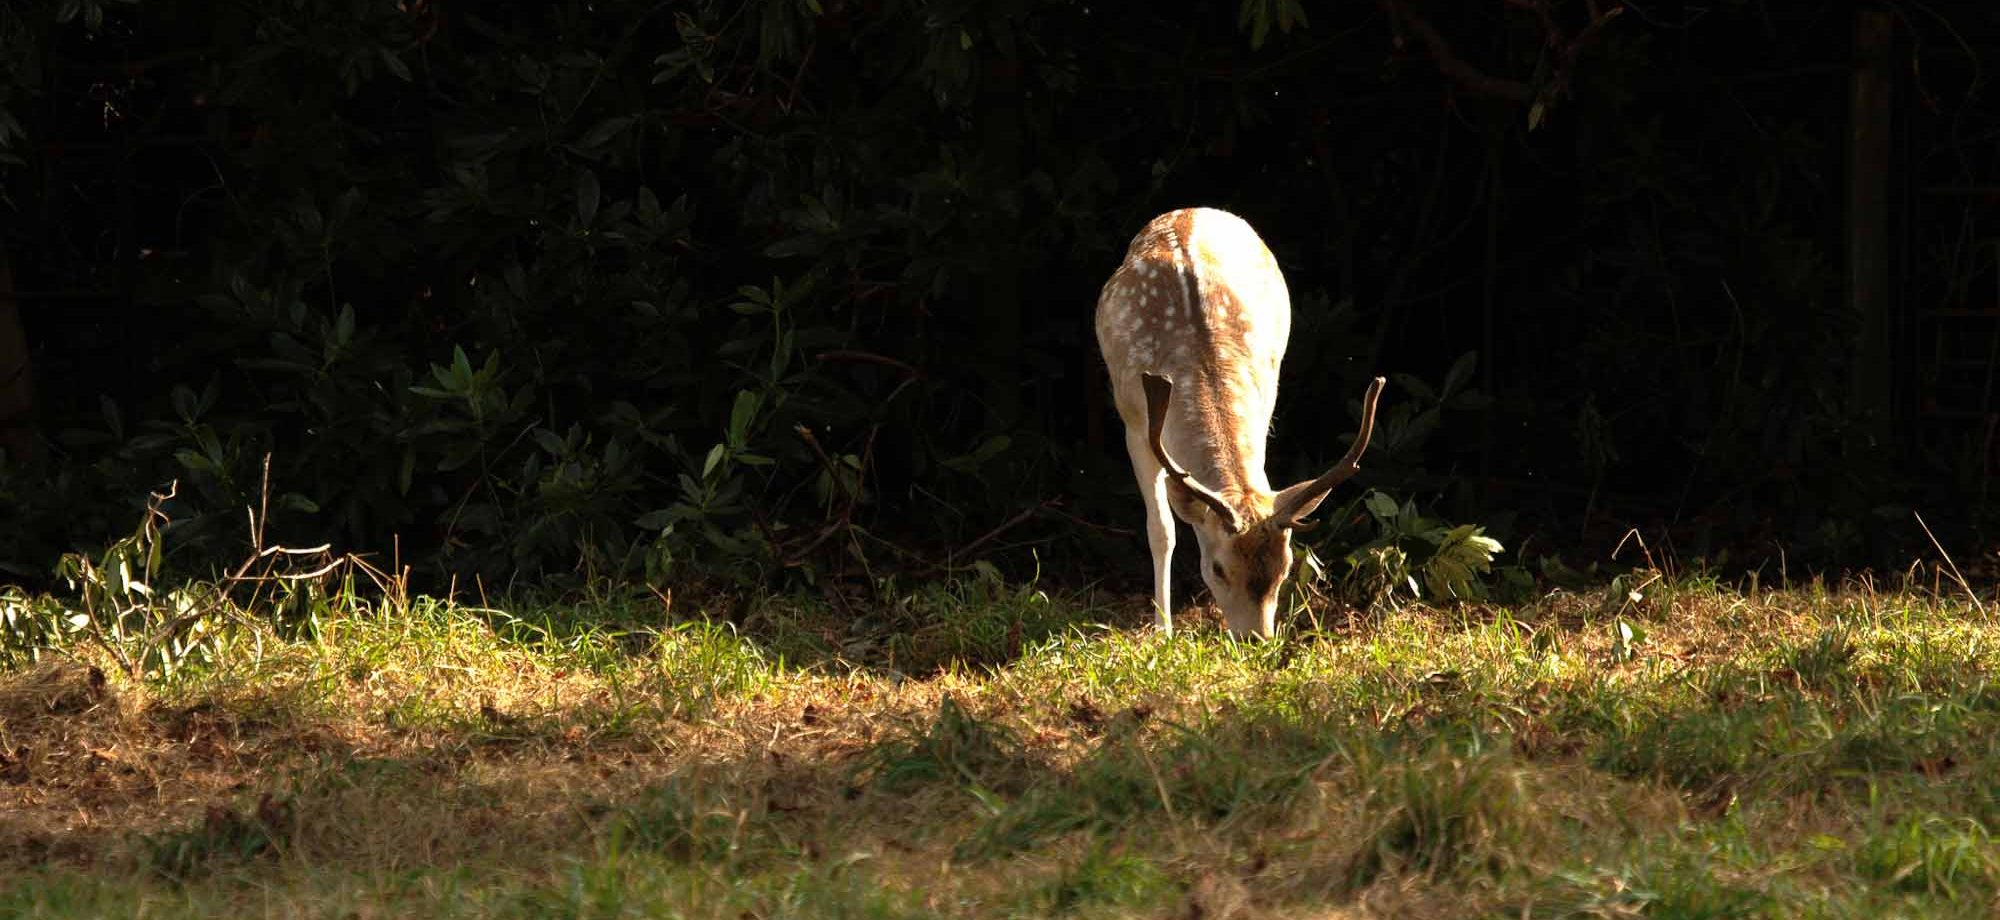 Fallow deer. Photo: Stephen G